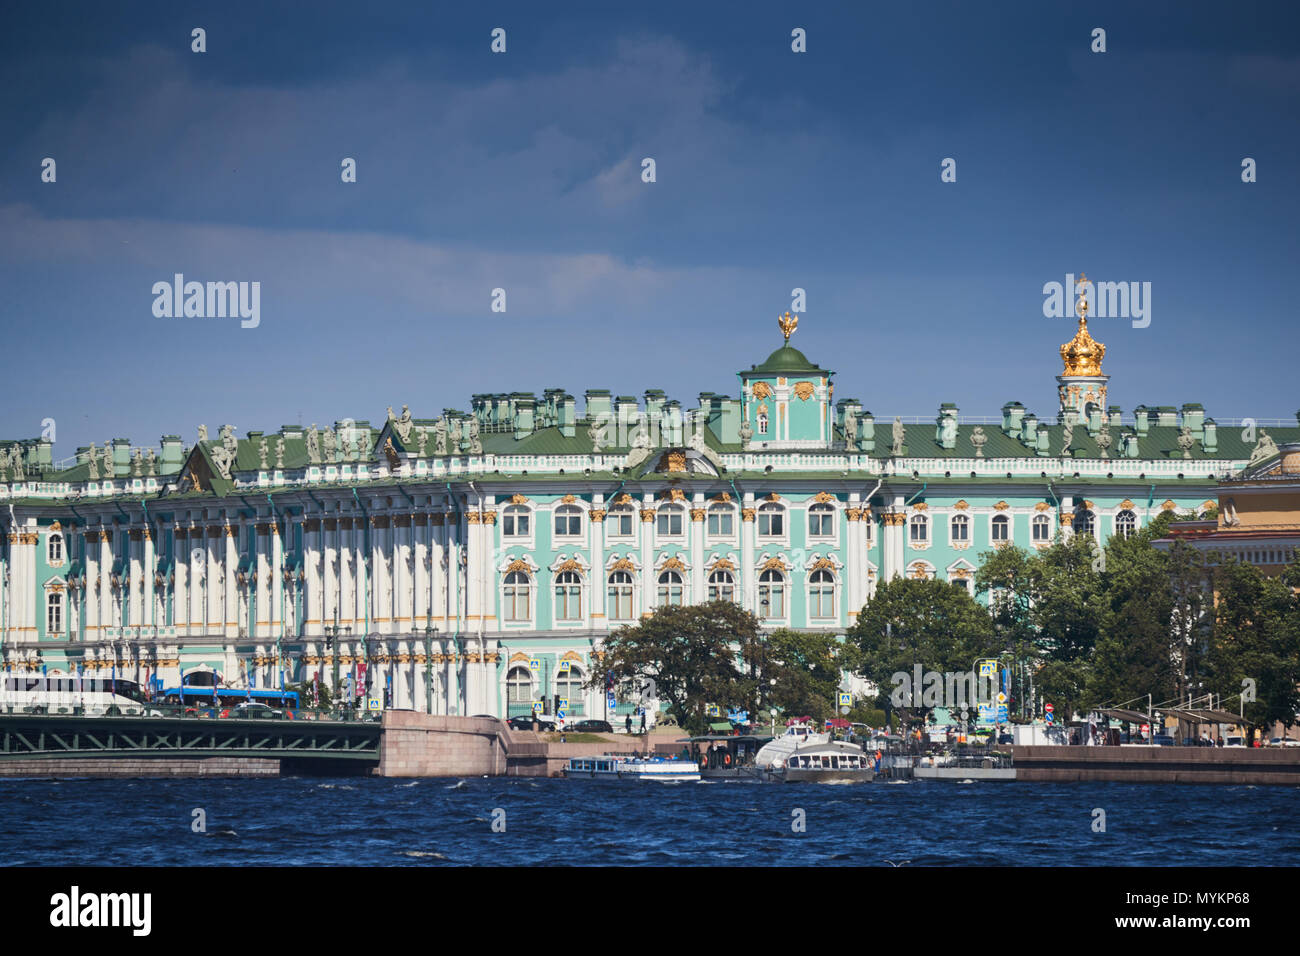 Russia, Saint Petersburg, The museum Hermitage, Palace Bridge, the Admiralty building, Andreevsky flag, sea navigation on the Neva River, the tourist - Stock Image